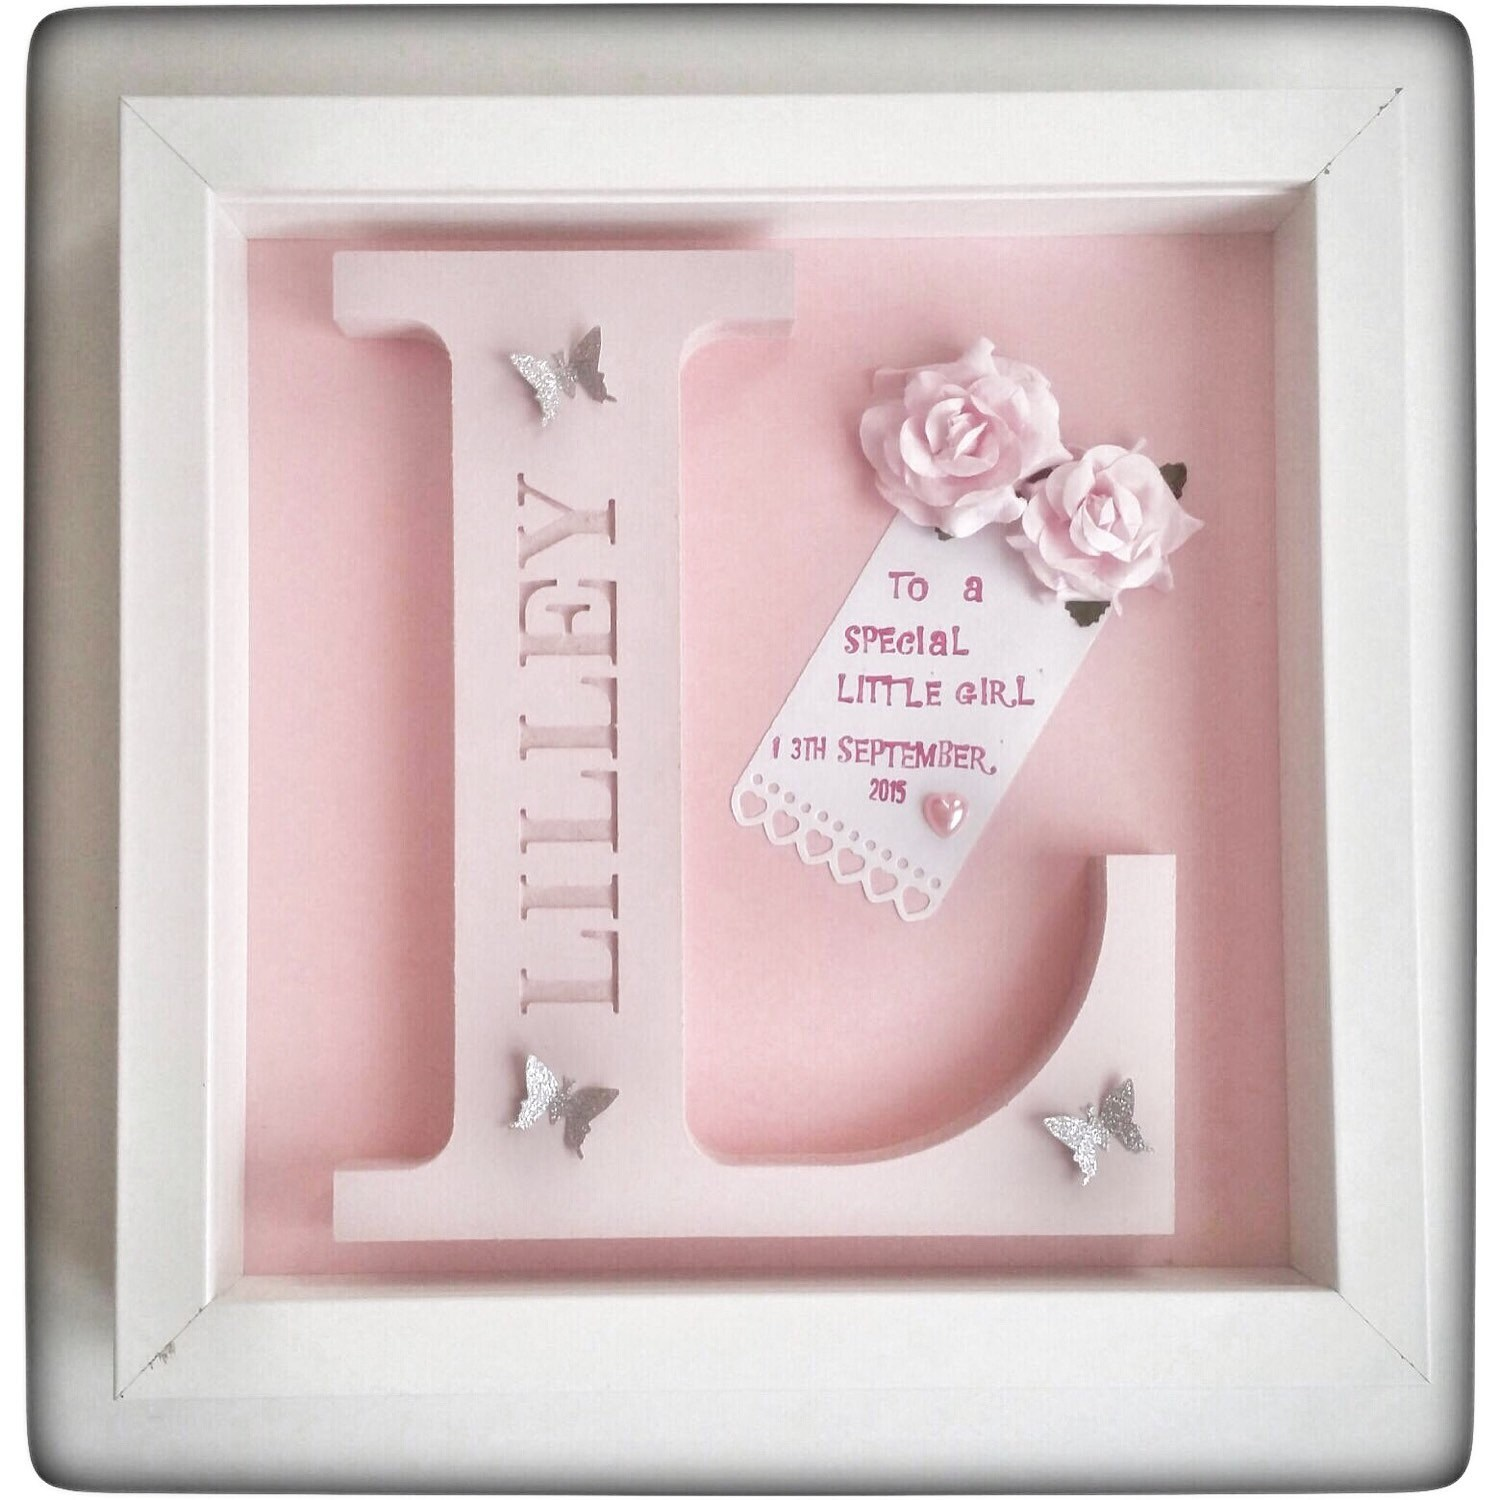 Luxury baby giftsbaby shower giftnewborn baby giftpersonalized luxury baby giftsbaby shower giftnewborn baby giftpersonalized baby shower giftbaby shower favourstwin baby giftschristening gift idea negle Choice Image